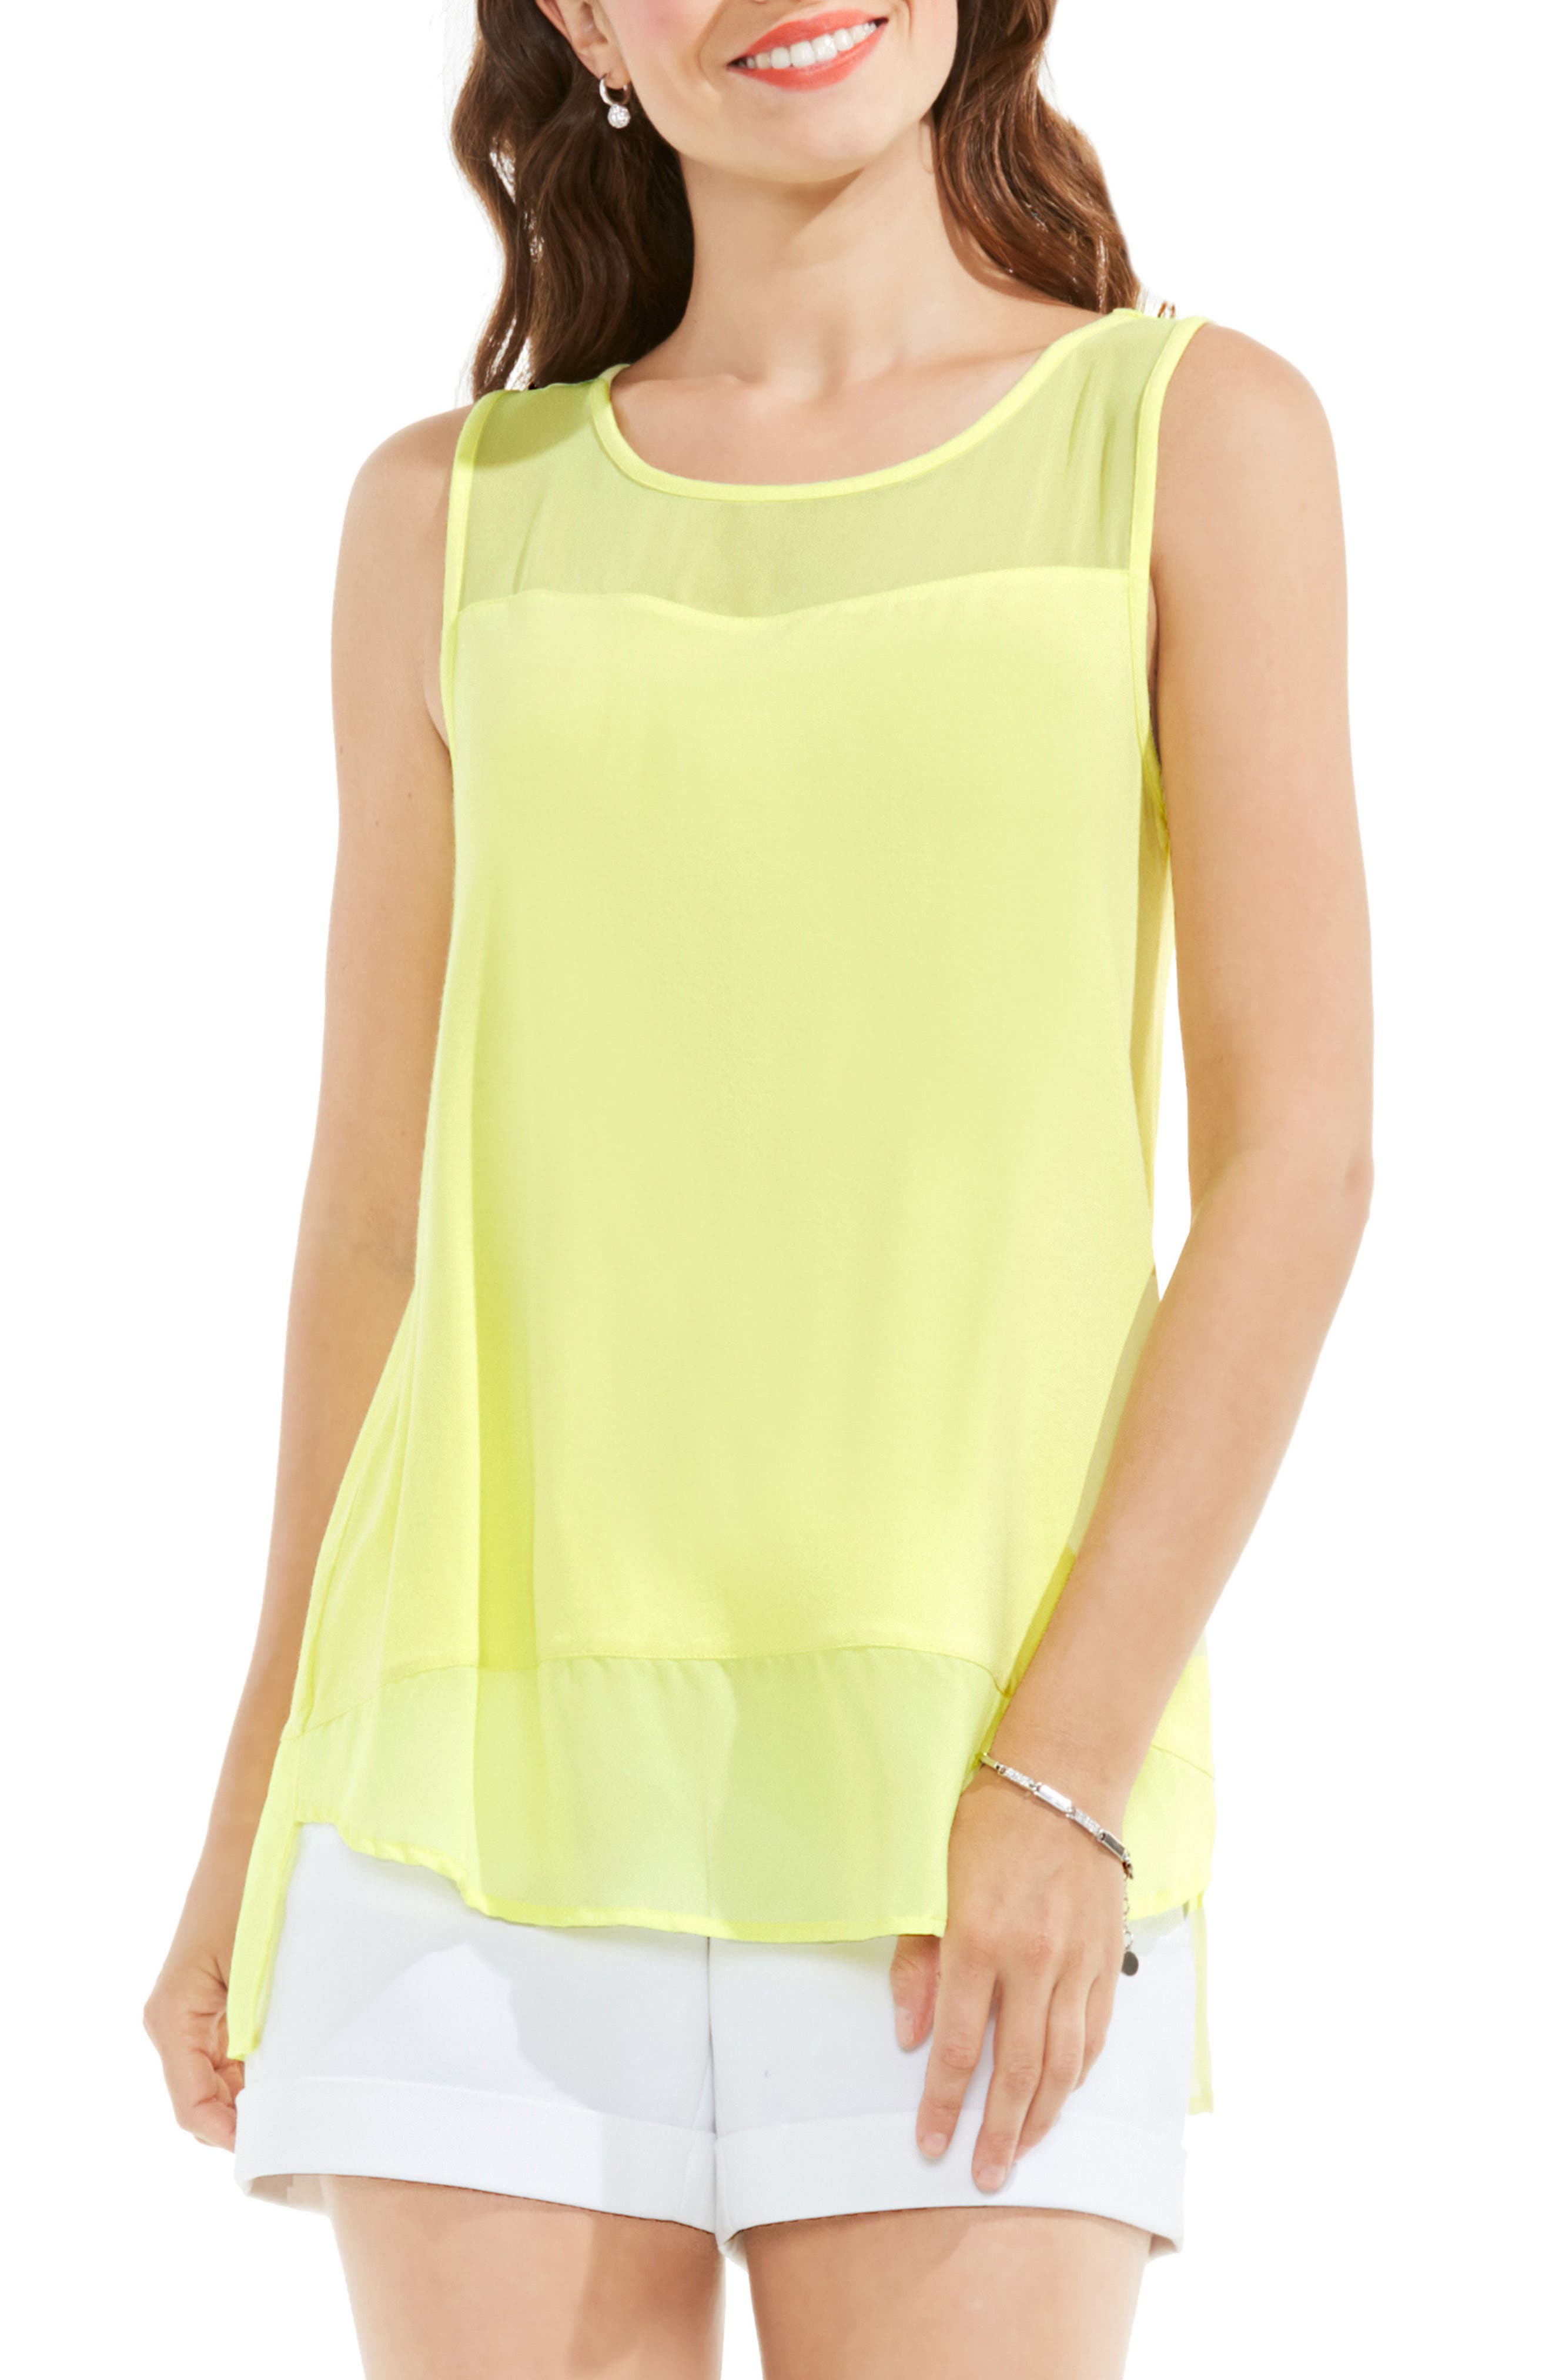 VINCE CAMUTO Chiffon Inset Jersey Top